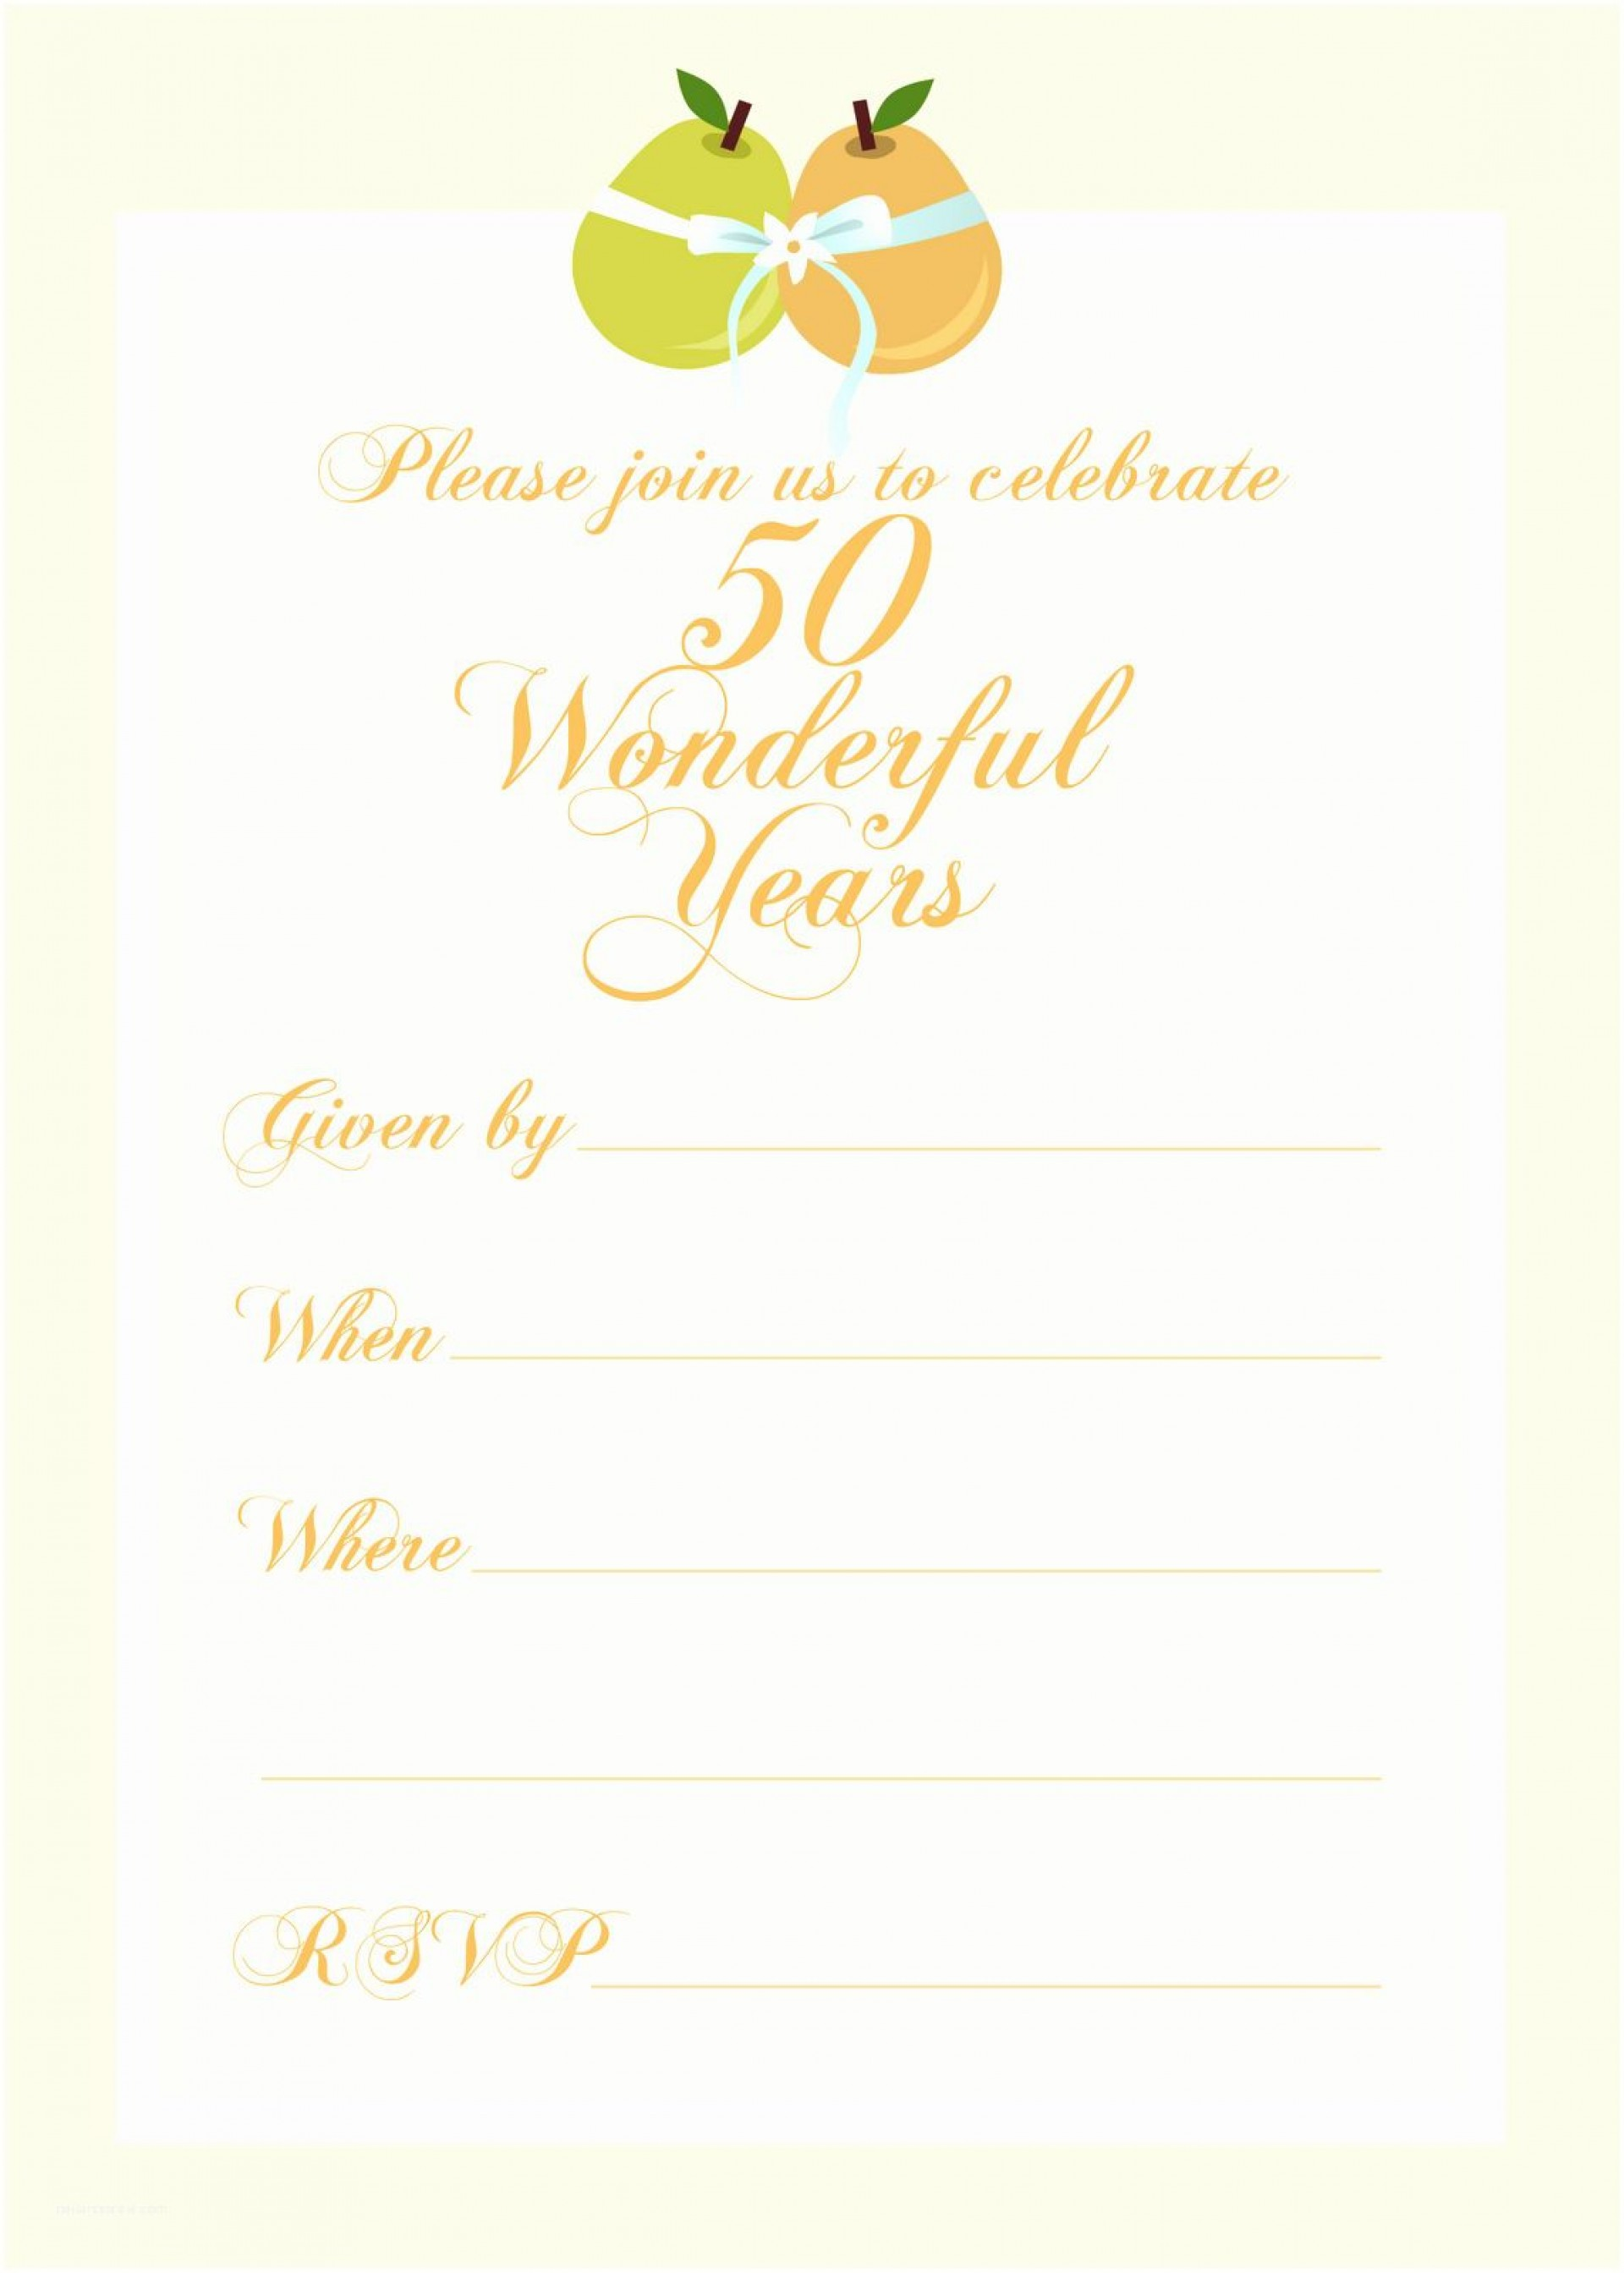 003 Astounding 50th Wedding Anniversary Invitation Template Inspiration  Templates Golden Uk Free Download1920